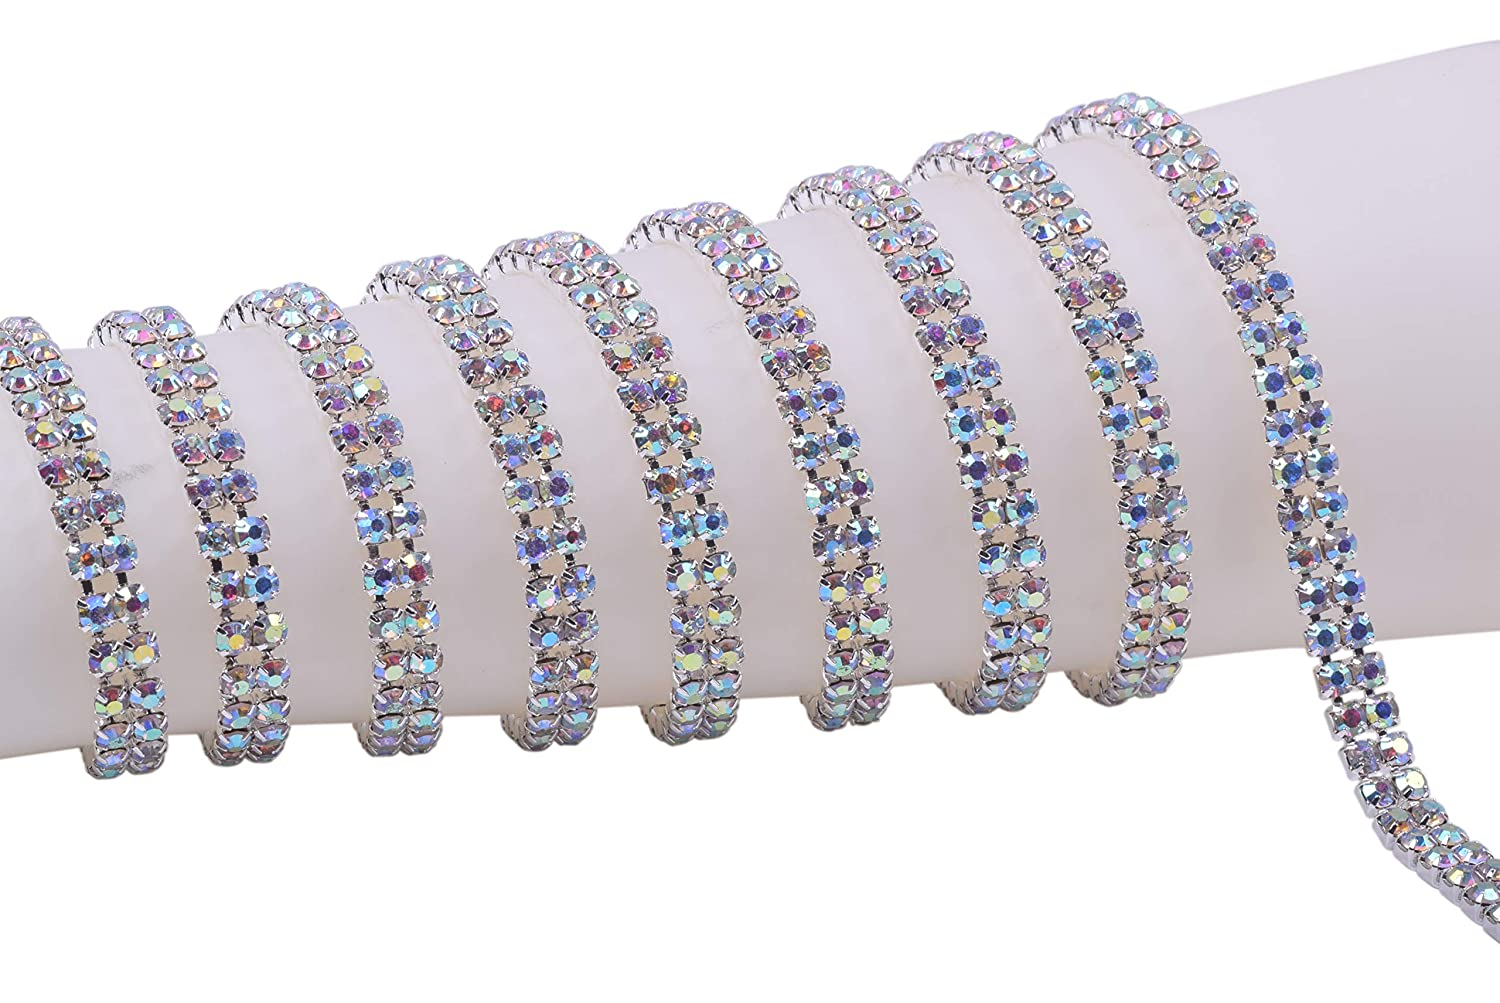 KAOYOO 3 Rows 1 Yard Crystal Rhinestone Close Chain Trim,SS16/4.0mm/0.16